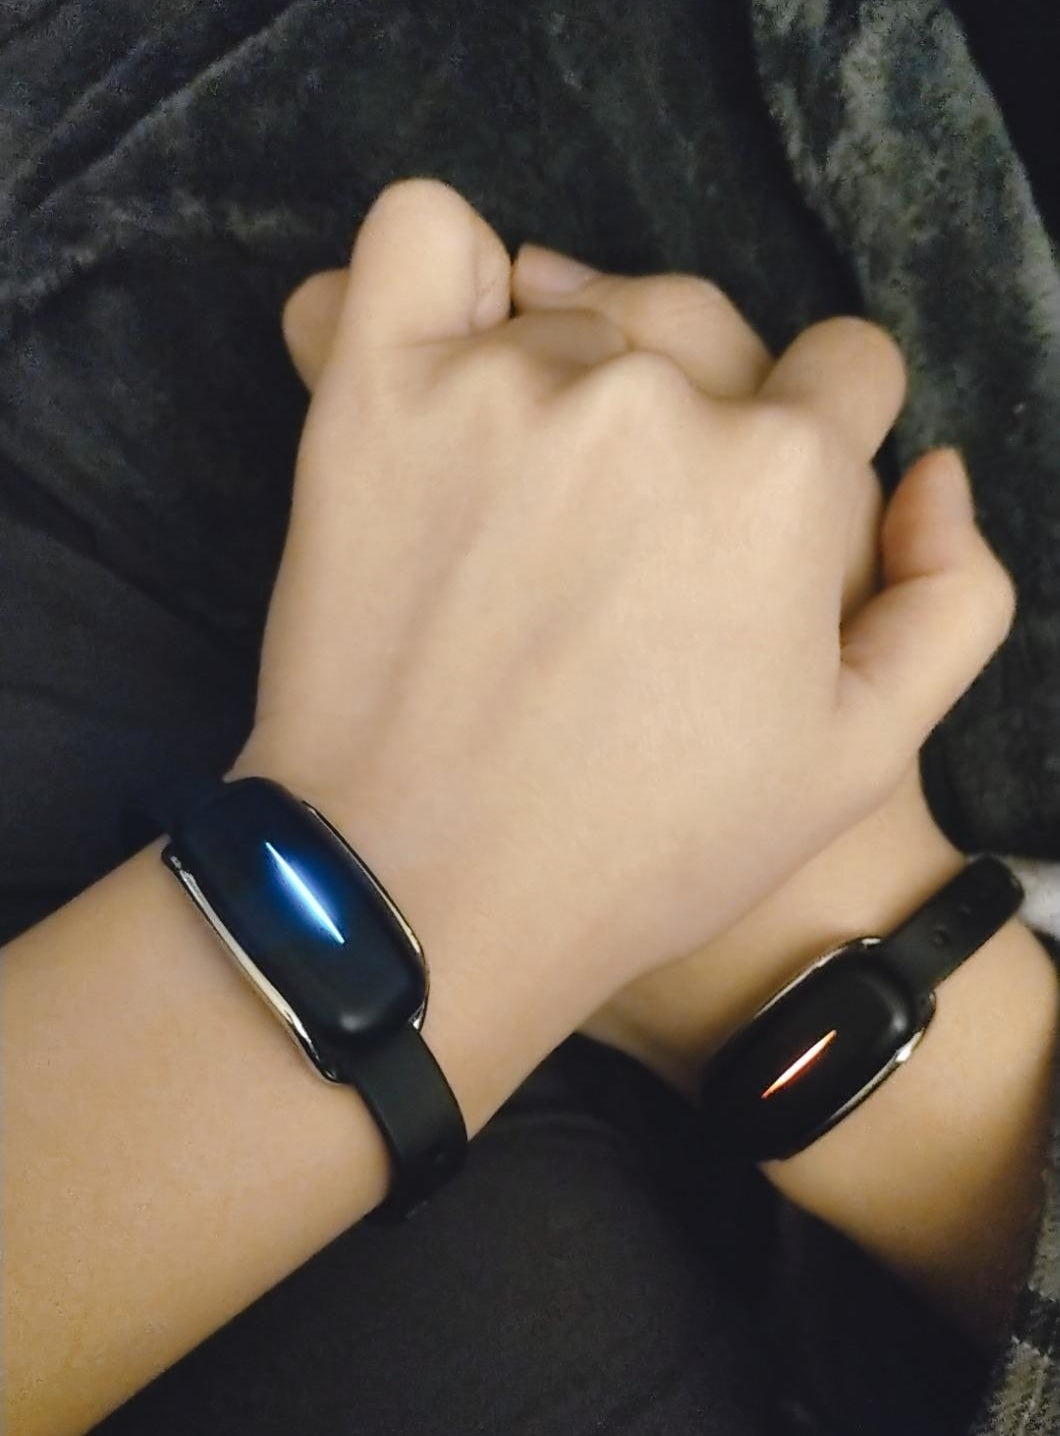 Two hands holding wearing the bluetooth friendship bracelets